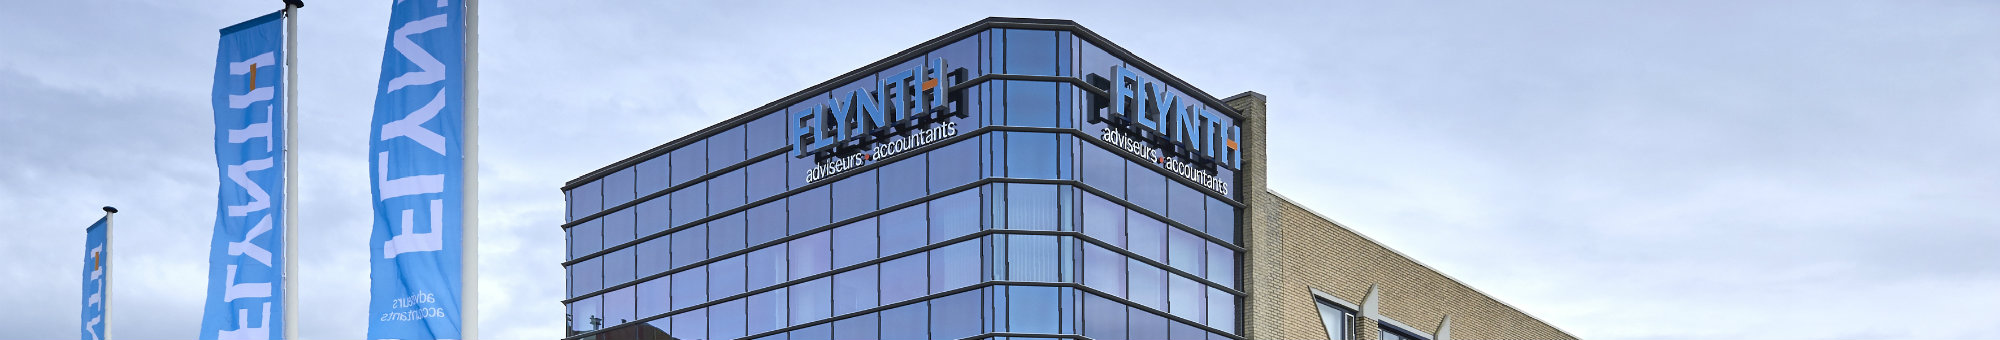 Flynth adviseurs en accountants in Woerden